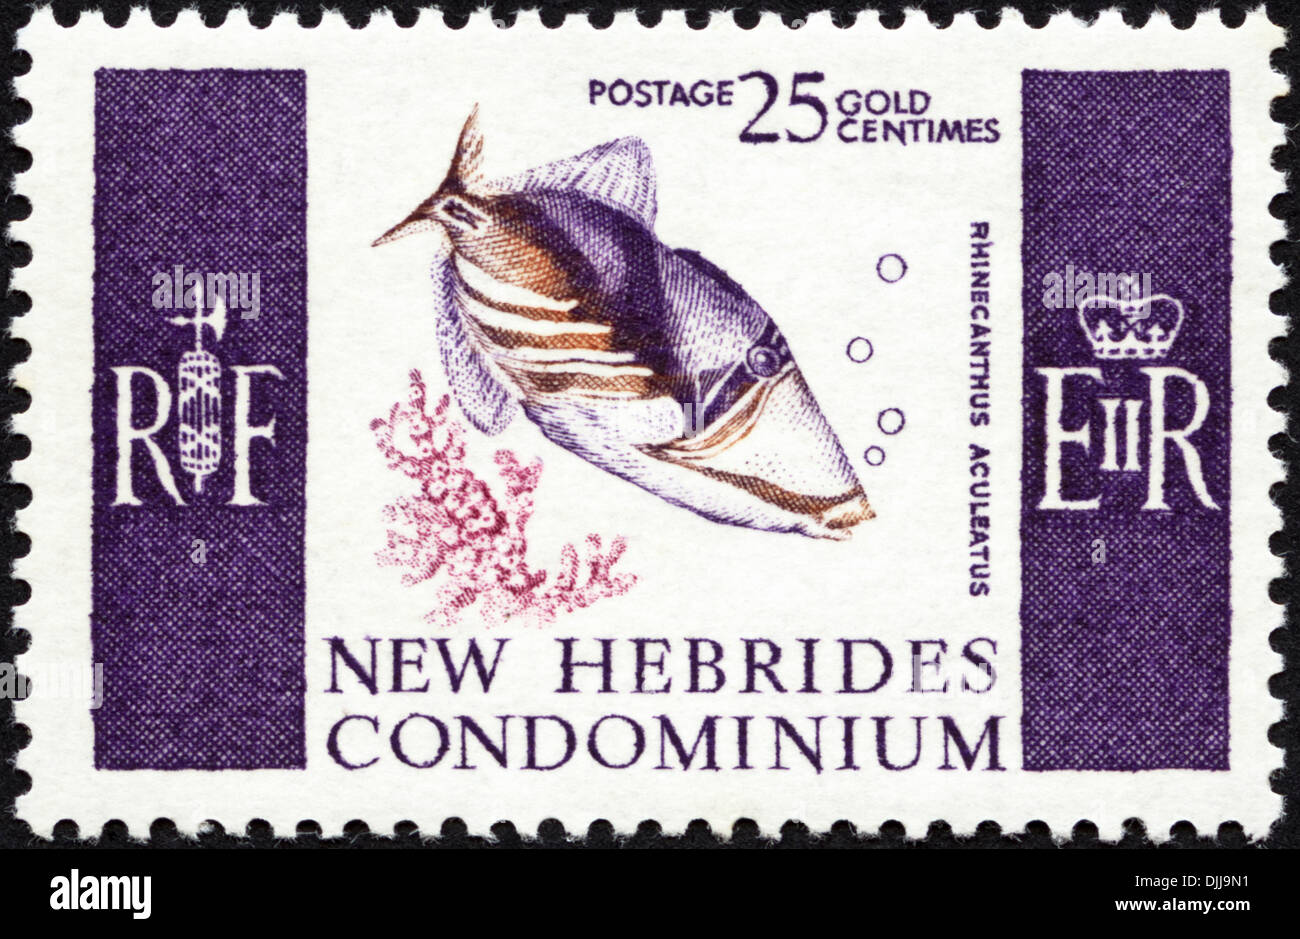 postage stamp New Hebrides Condominium 25c featuring Rhinecanthus Aculeatus issued 1966 - Stock Image